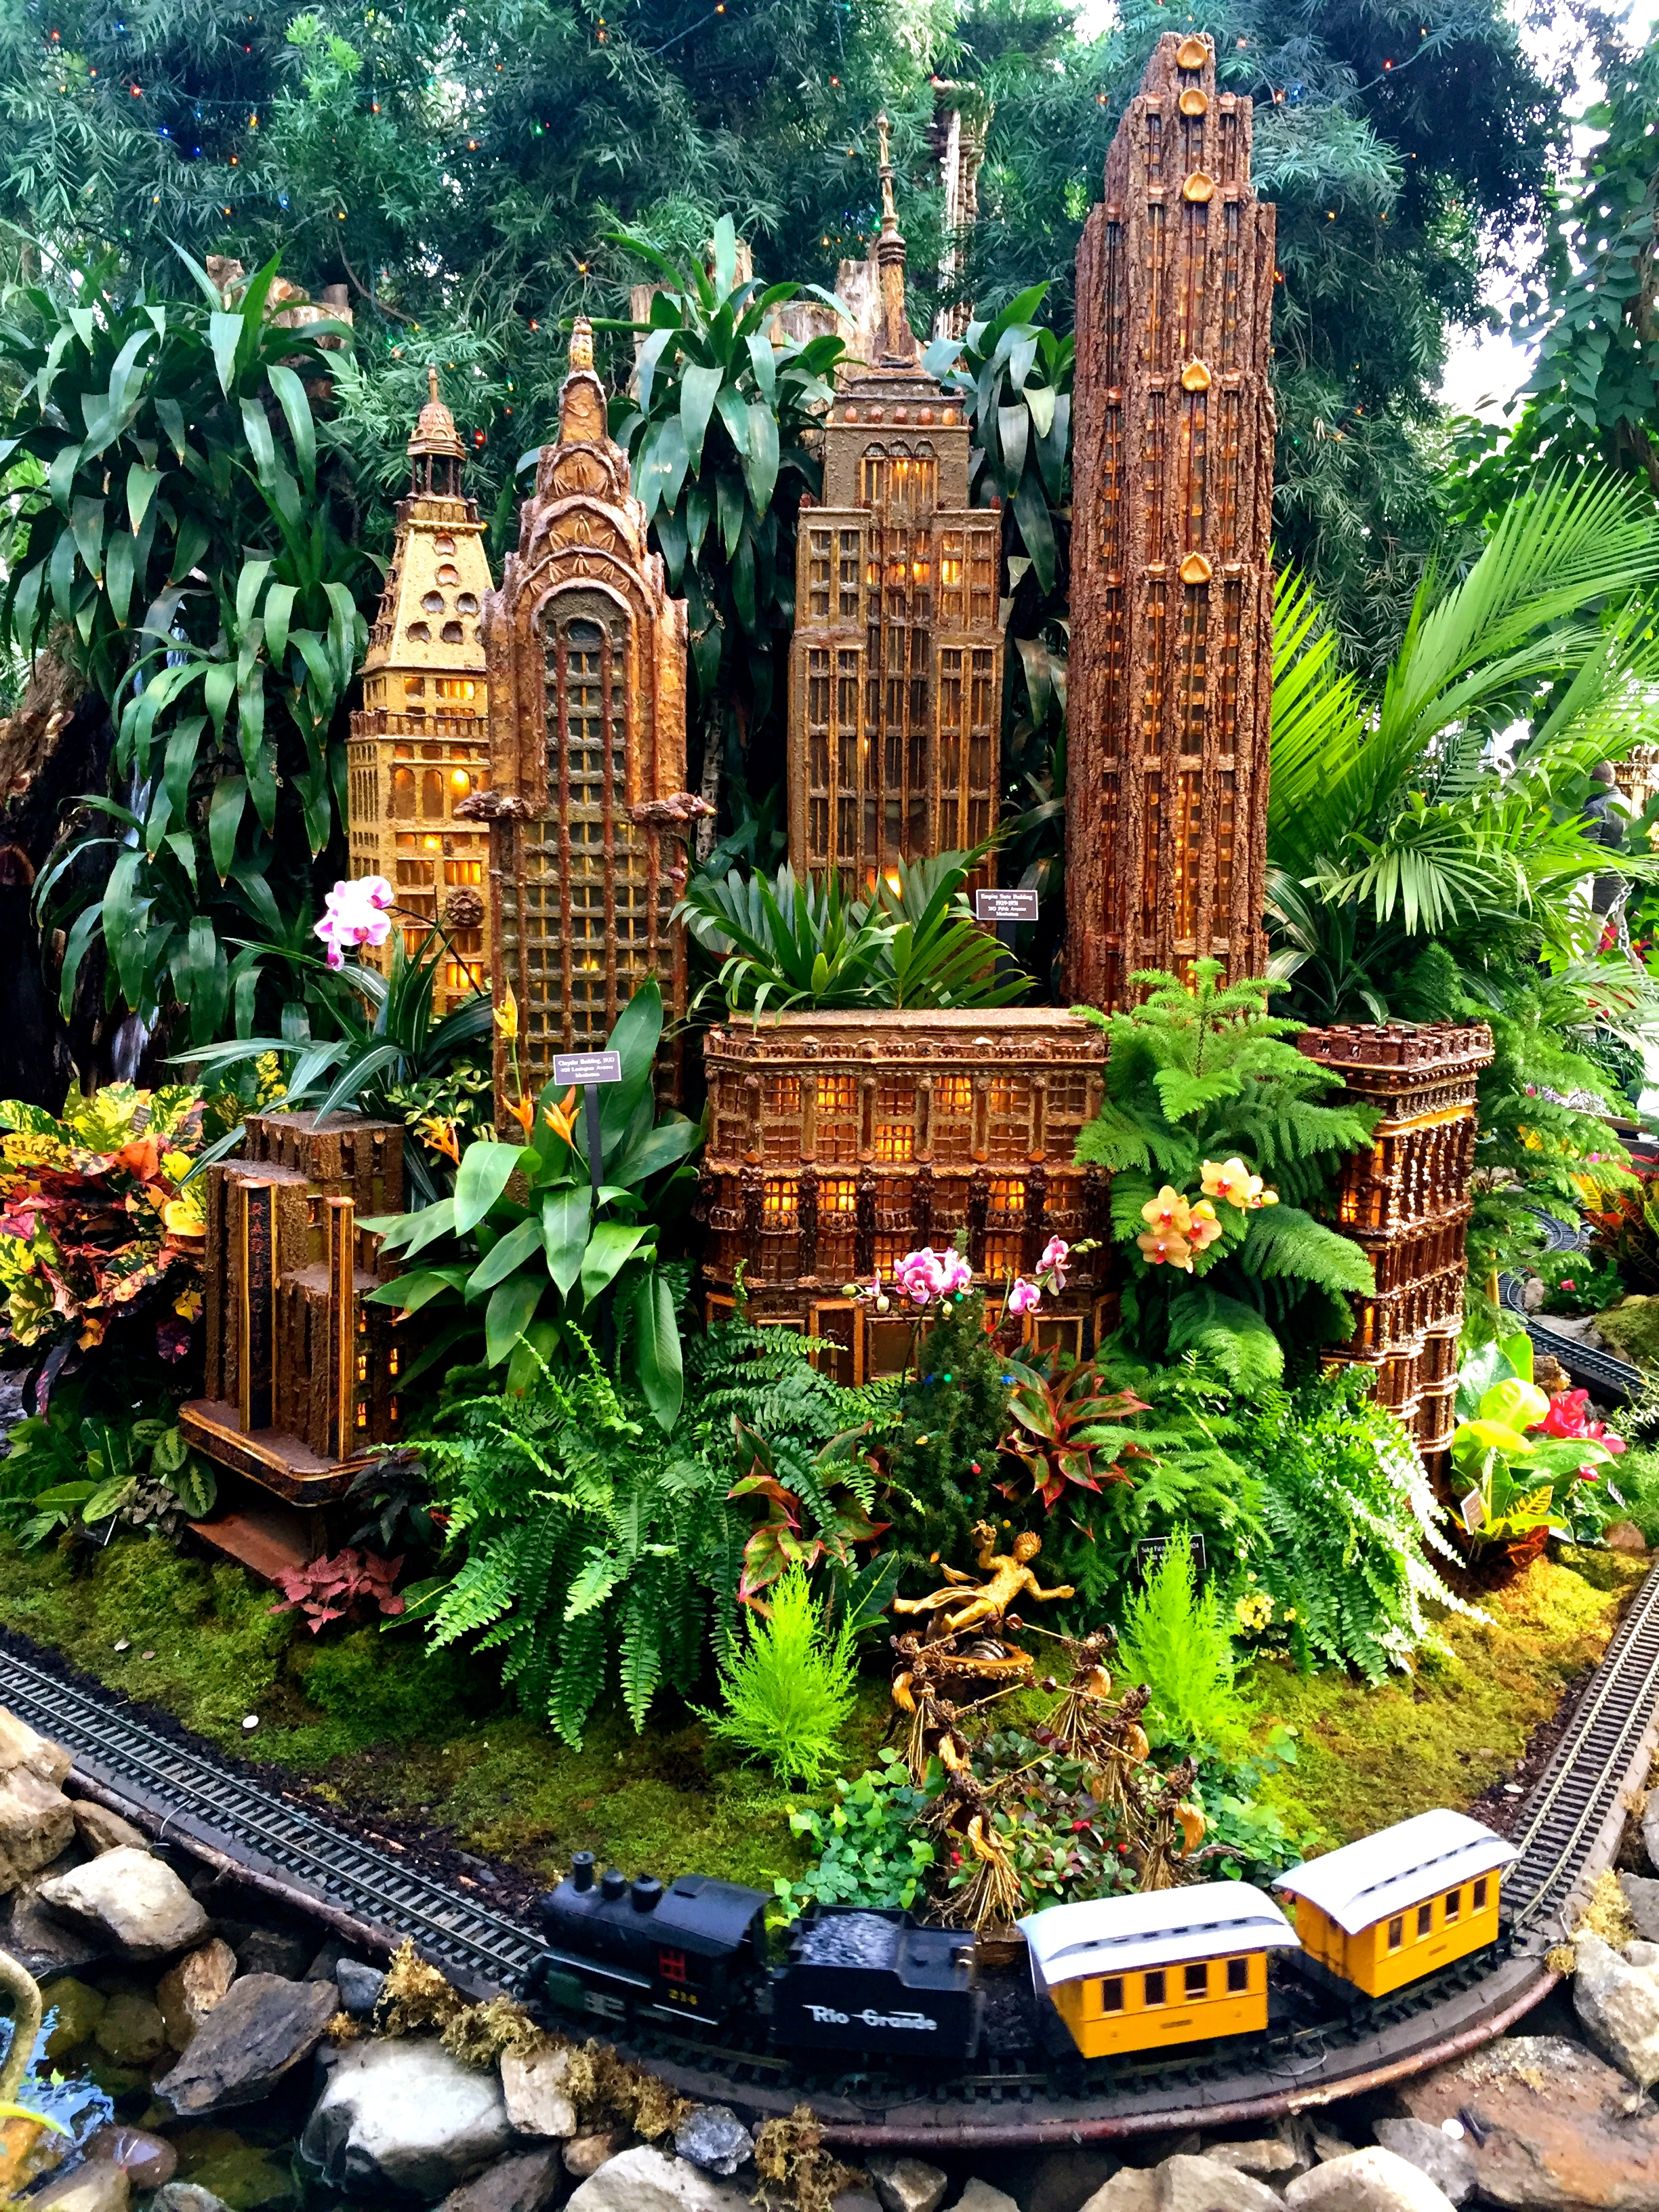 Guide to the holiday train show at the new york botanical Botanical garden train show